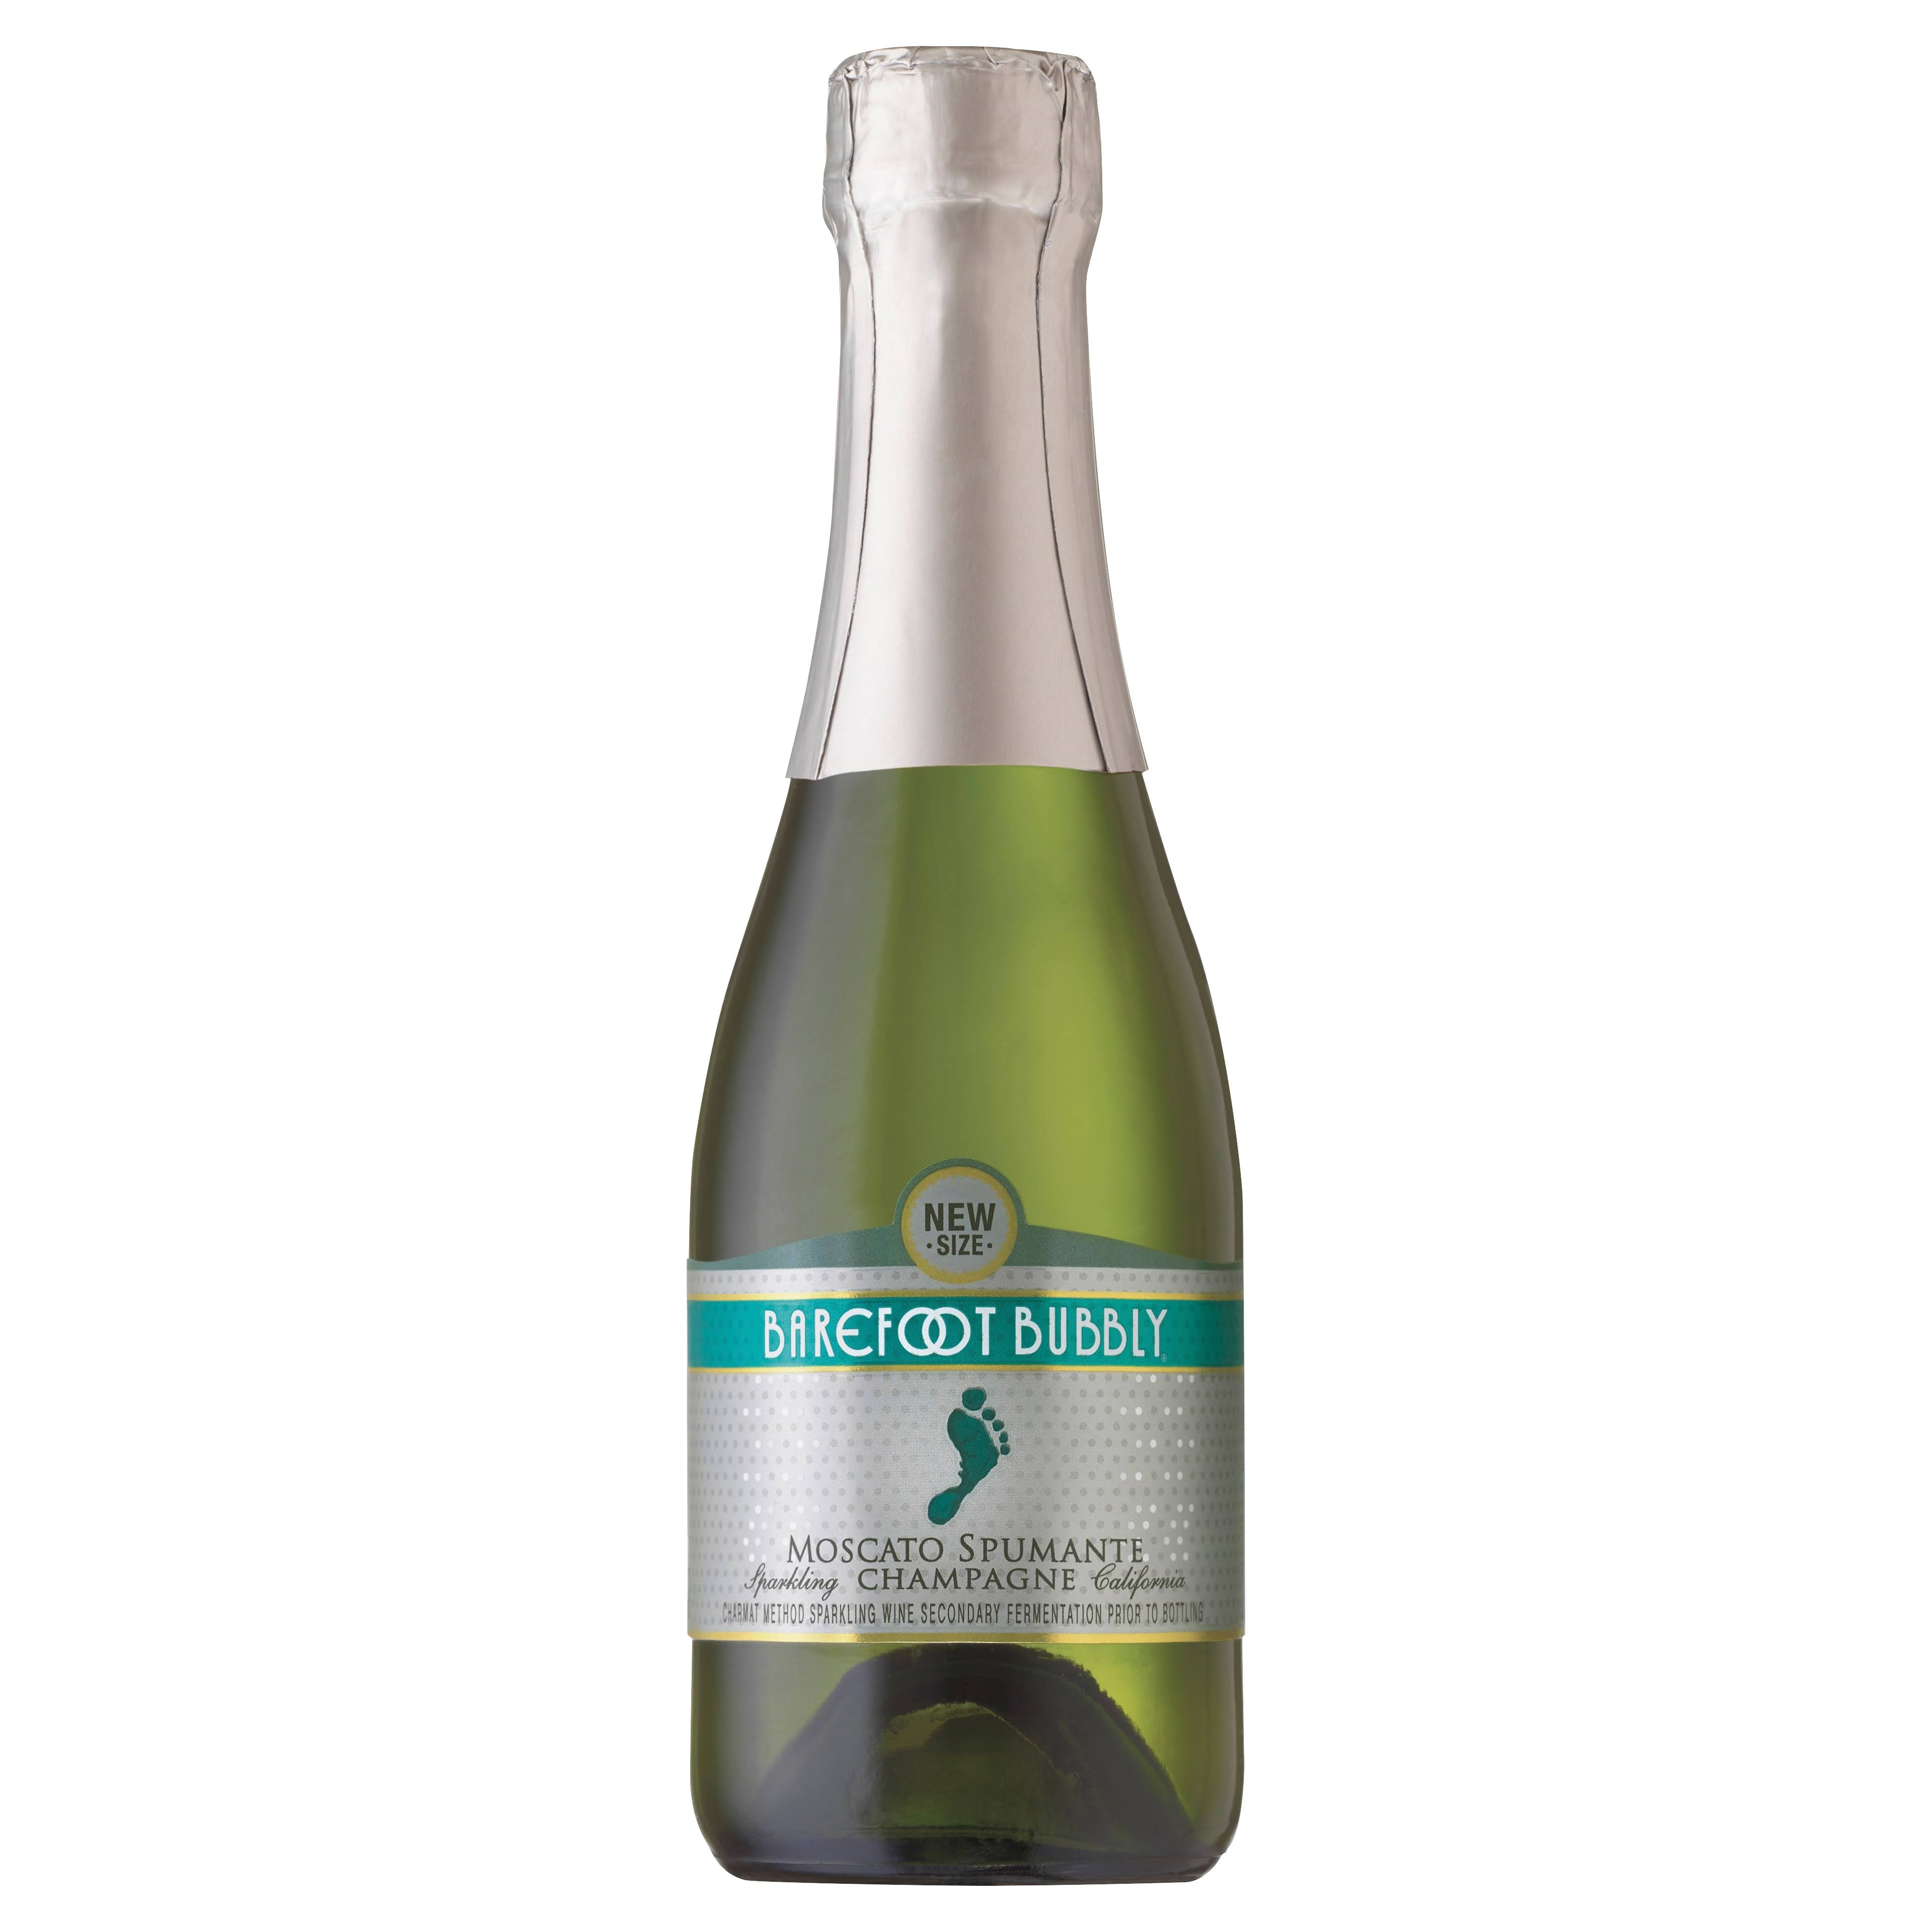 Barefoot Bubbly Sparkling Champagne, Moscato Spumante, California